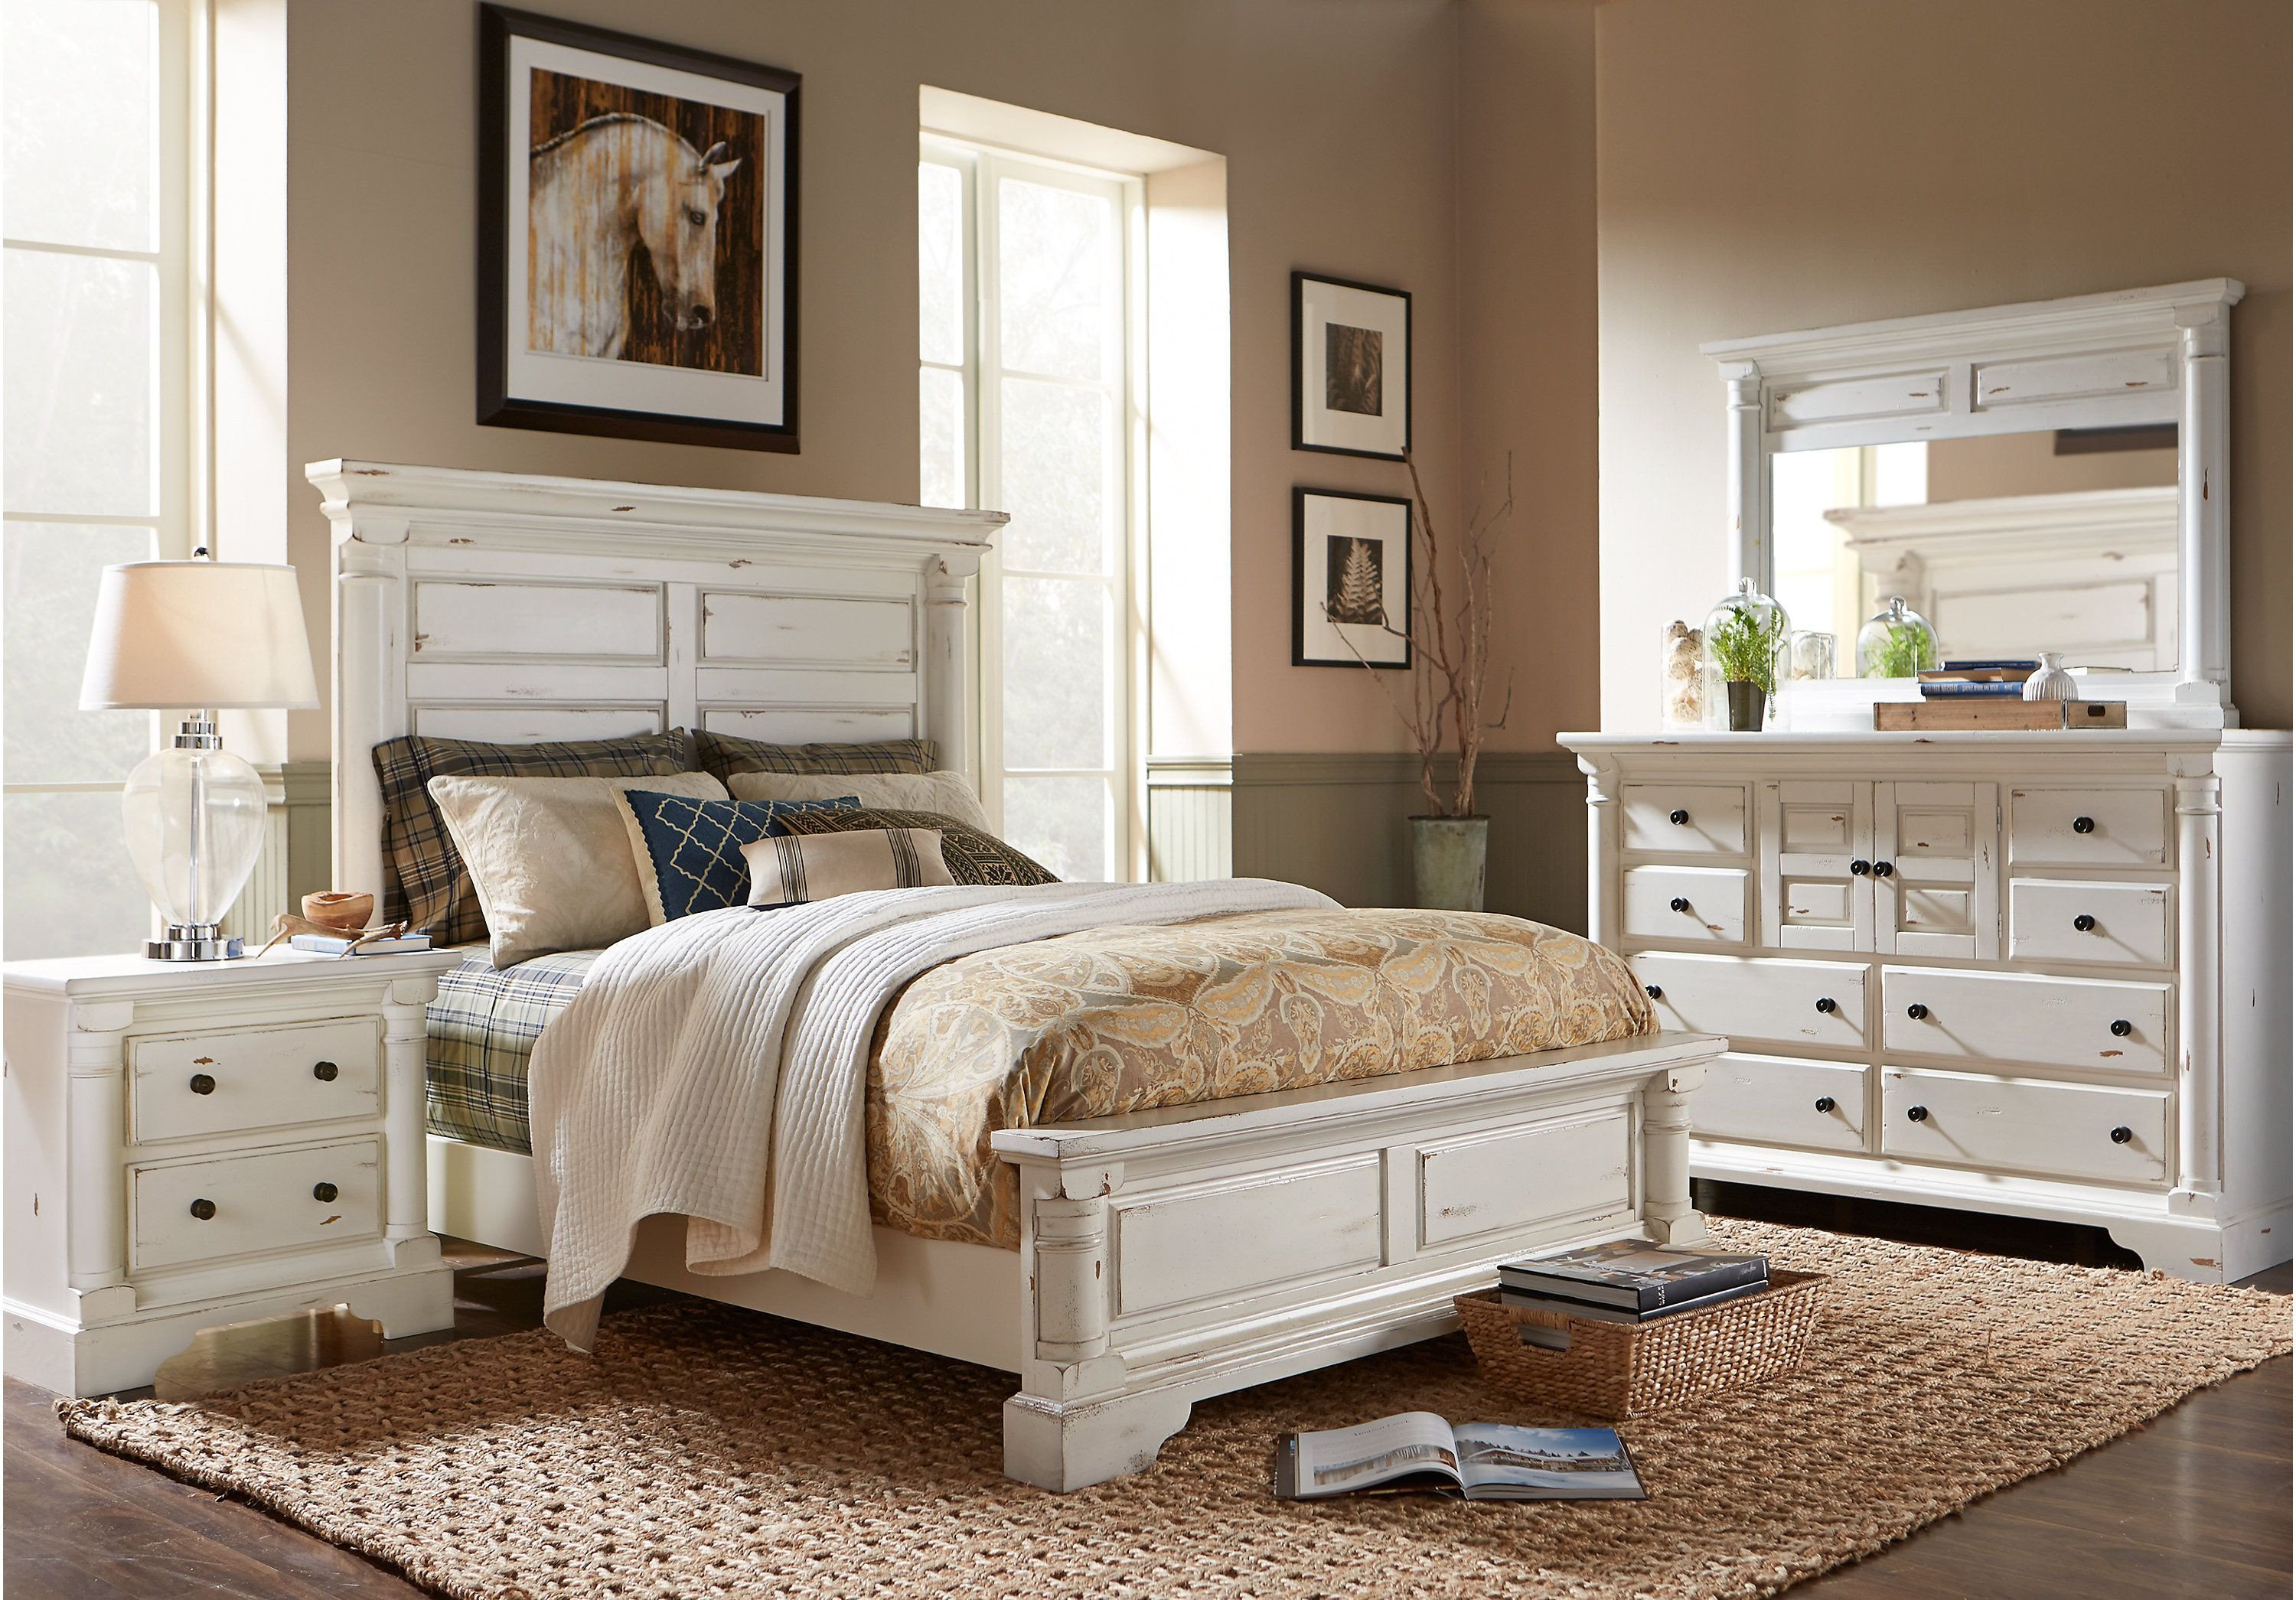 Rooms to Go Bedroom Set King Beautiful Claymore Park F White 8 Pc King Panel Bedroom